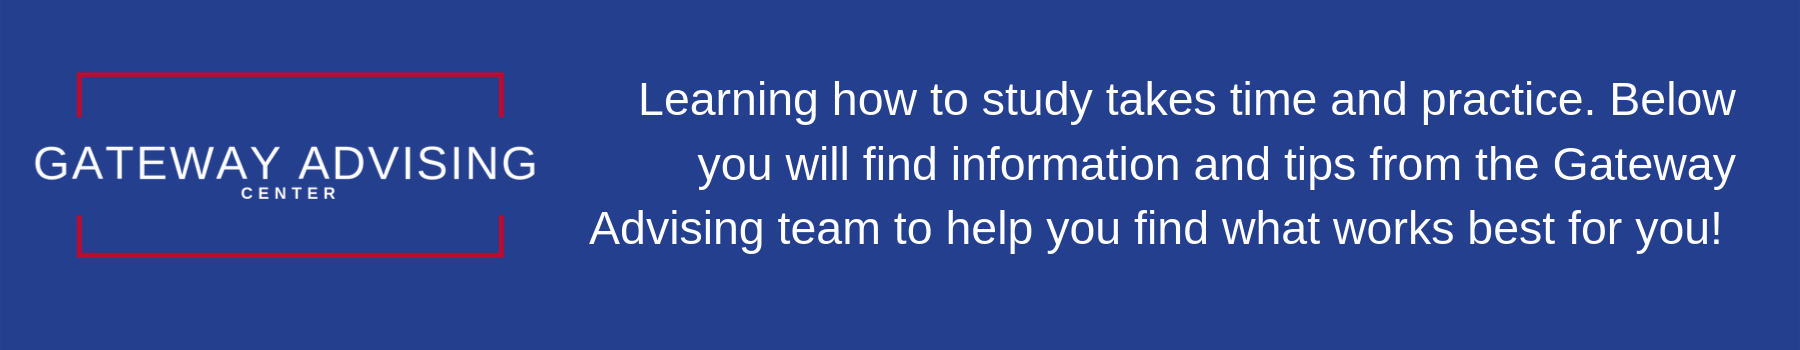 Gateway Advising Center:  Learning how to study takes time and practice.  Below you will find information and tips to help you find what works best for you.